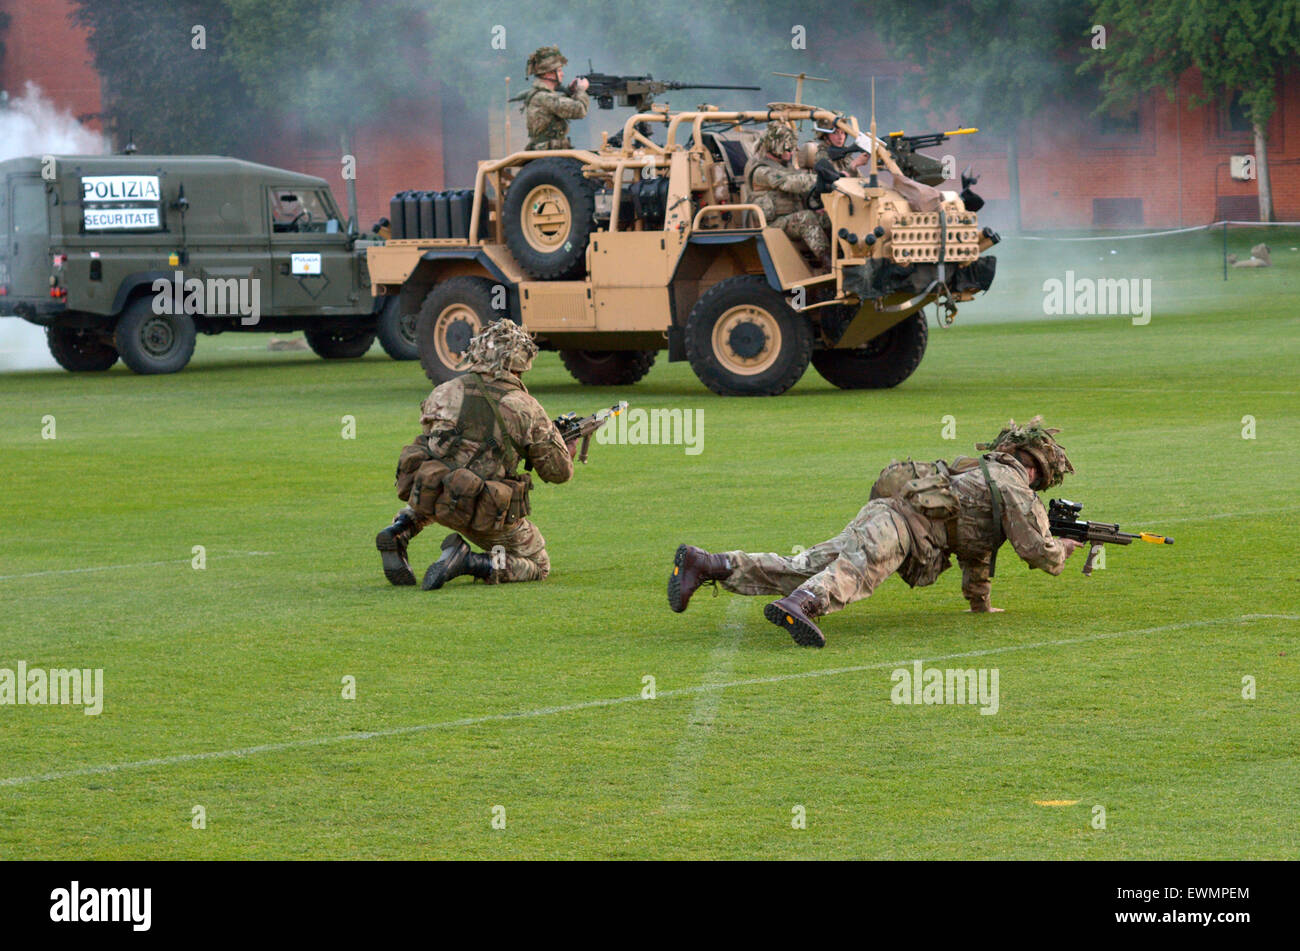 LONDON - MAY 14 2015:British Army force during military demonstration show.On 1 Jan 2015, the British Army employed: - Stock Image